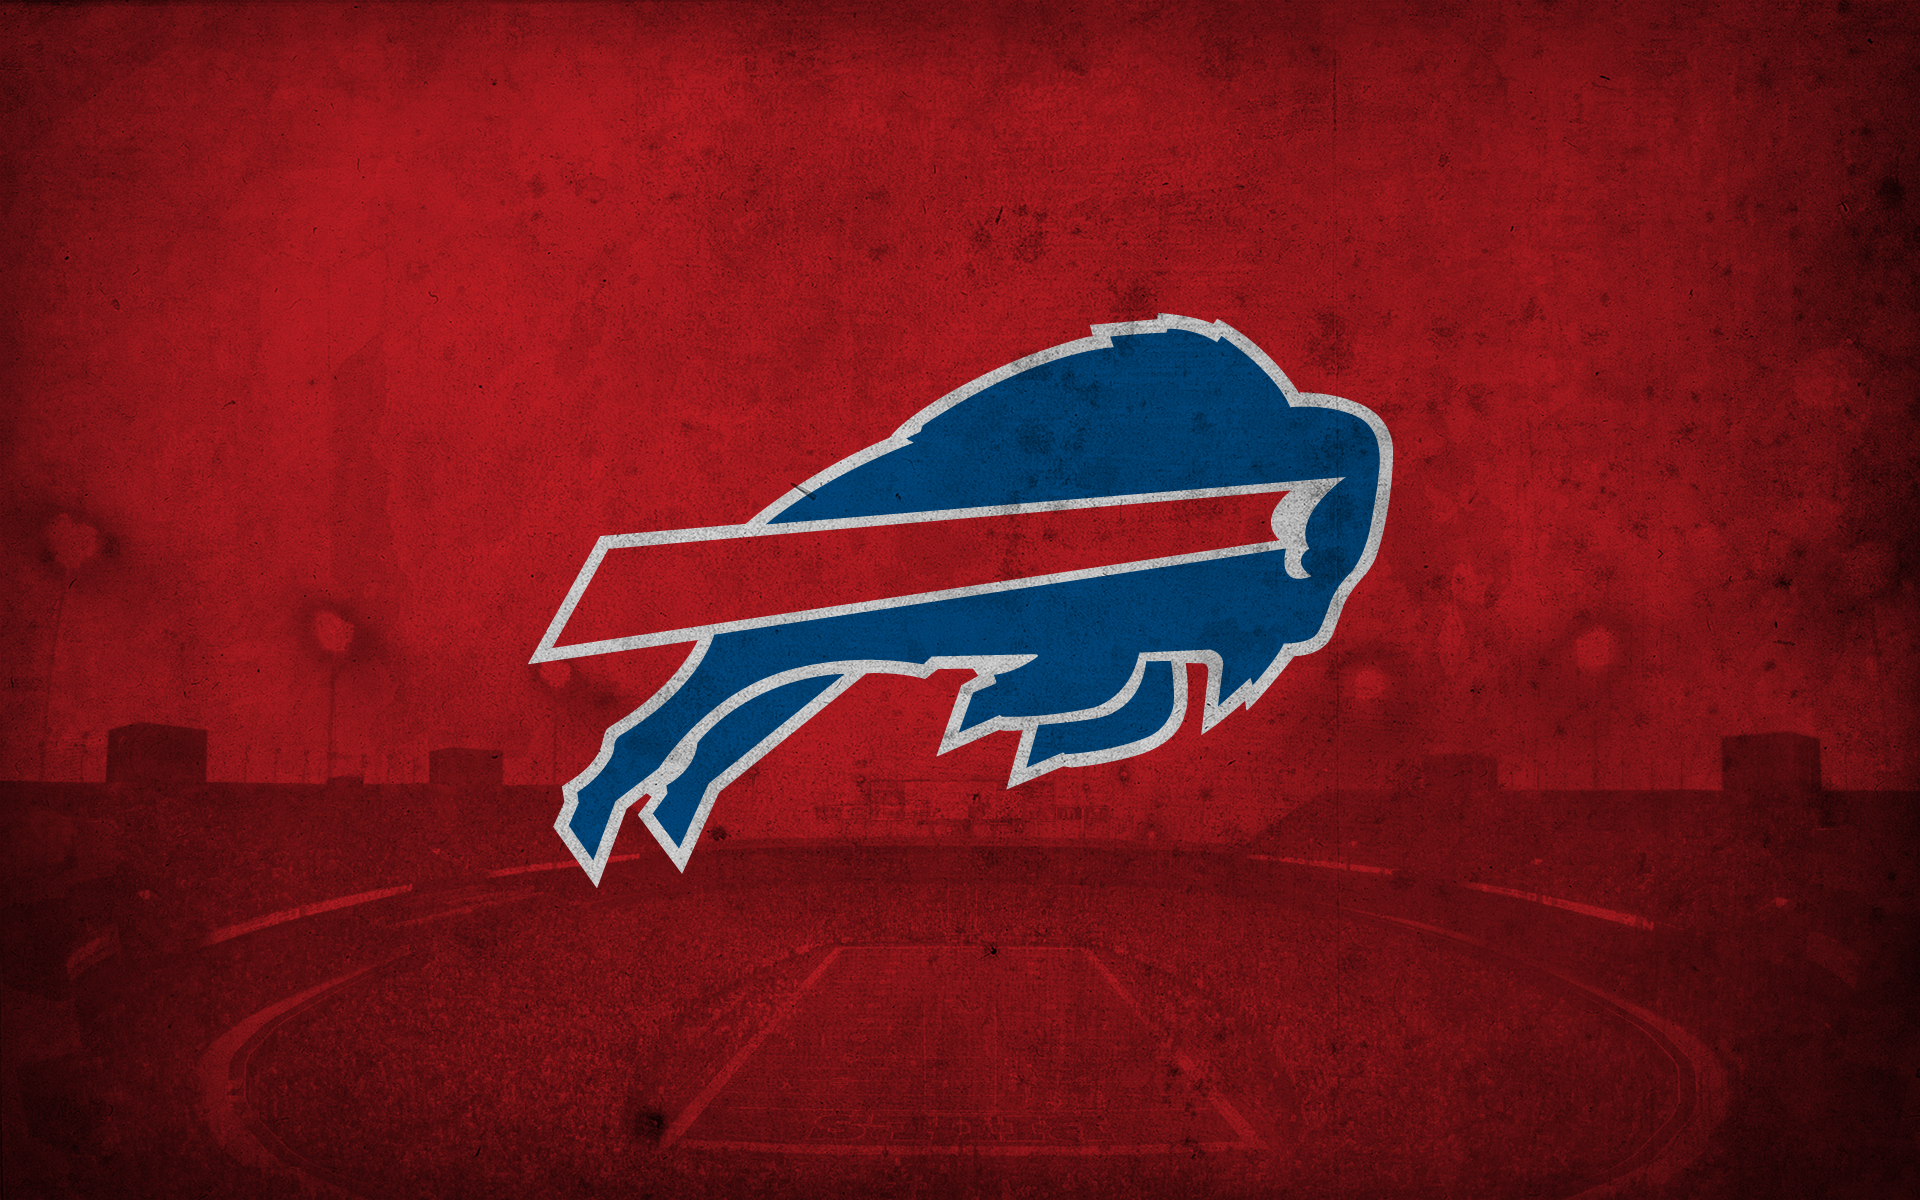 wallpapers nfl wallpapers 5 Sources of Buffalo Bills Wallpaper Desktop 1920x1200